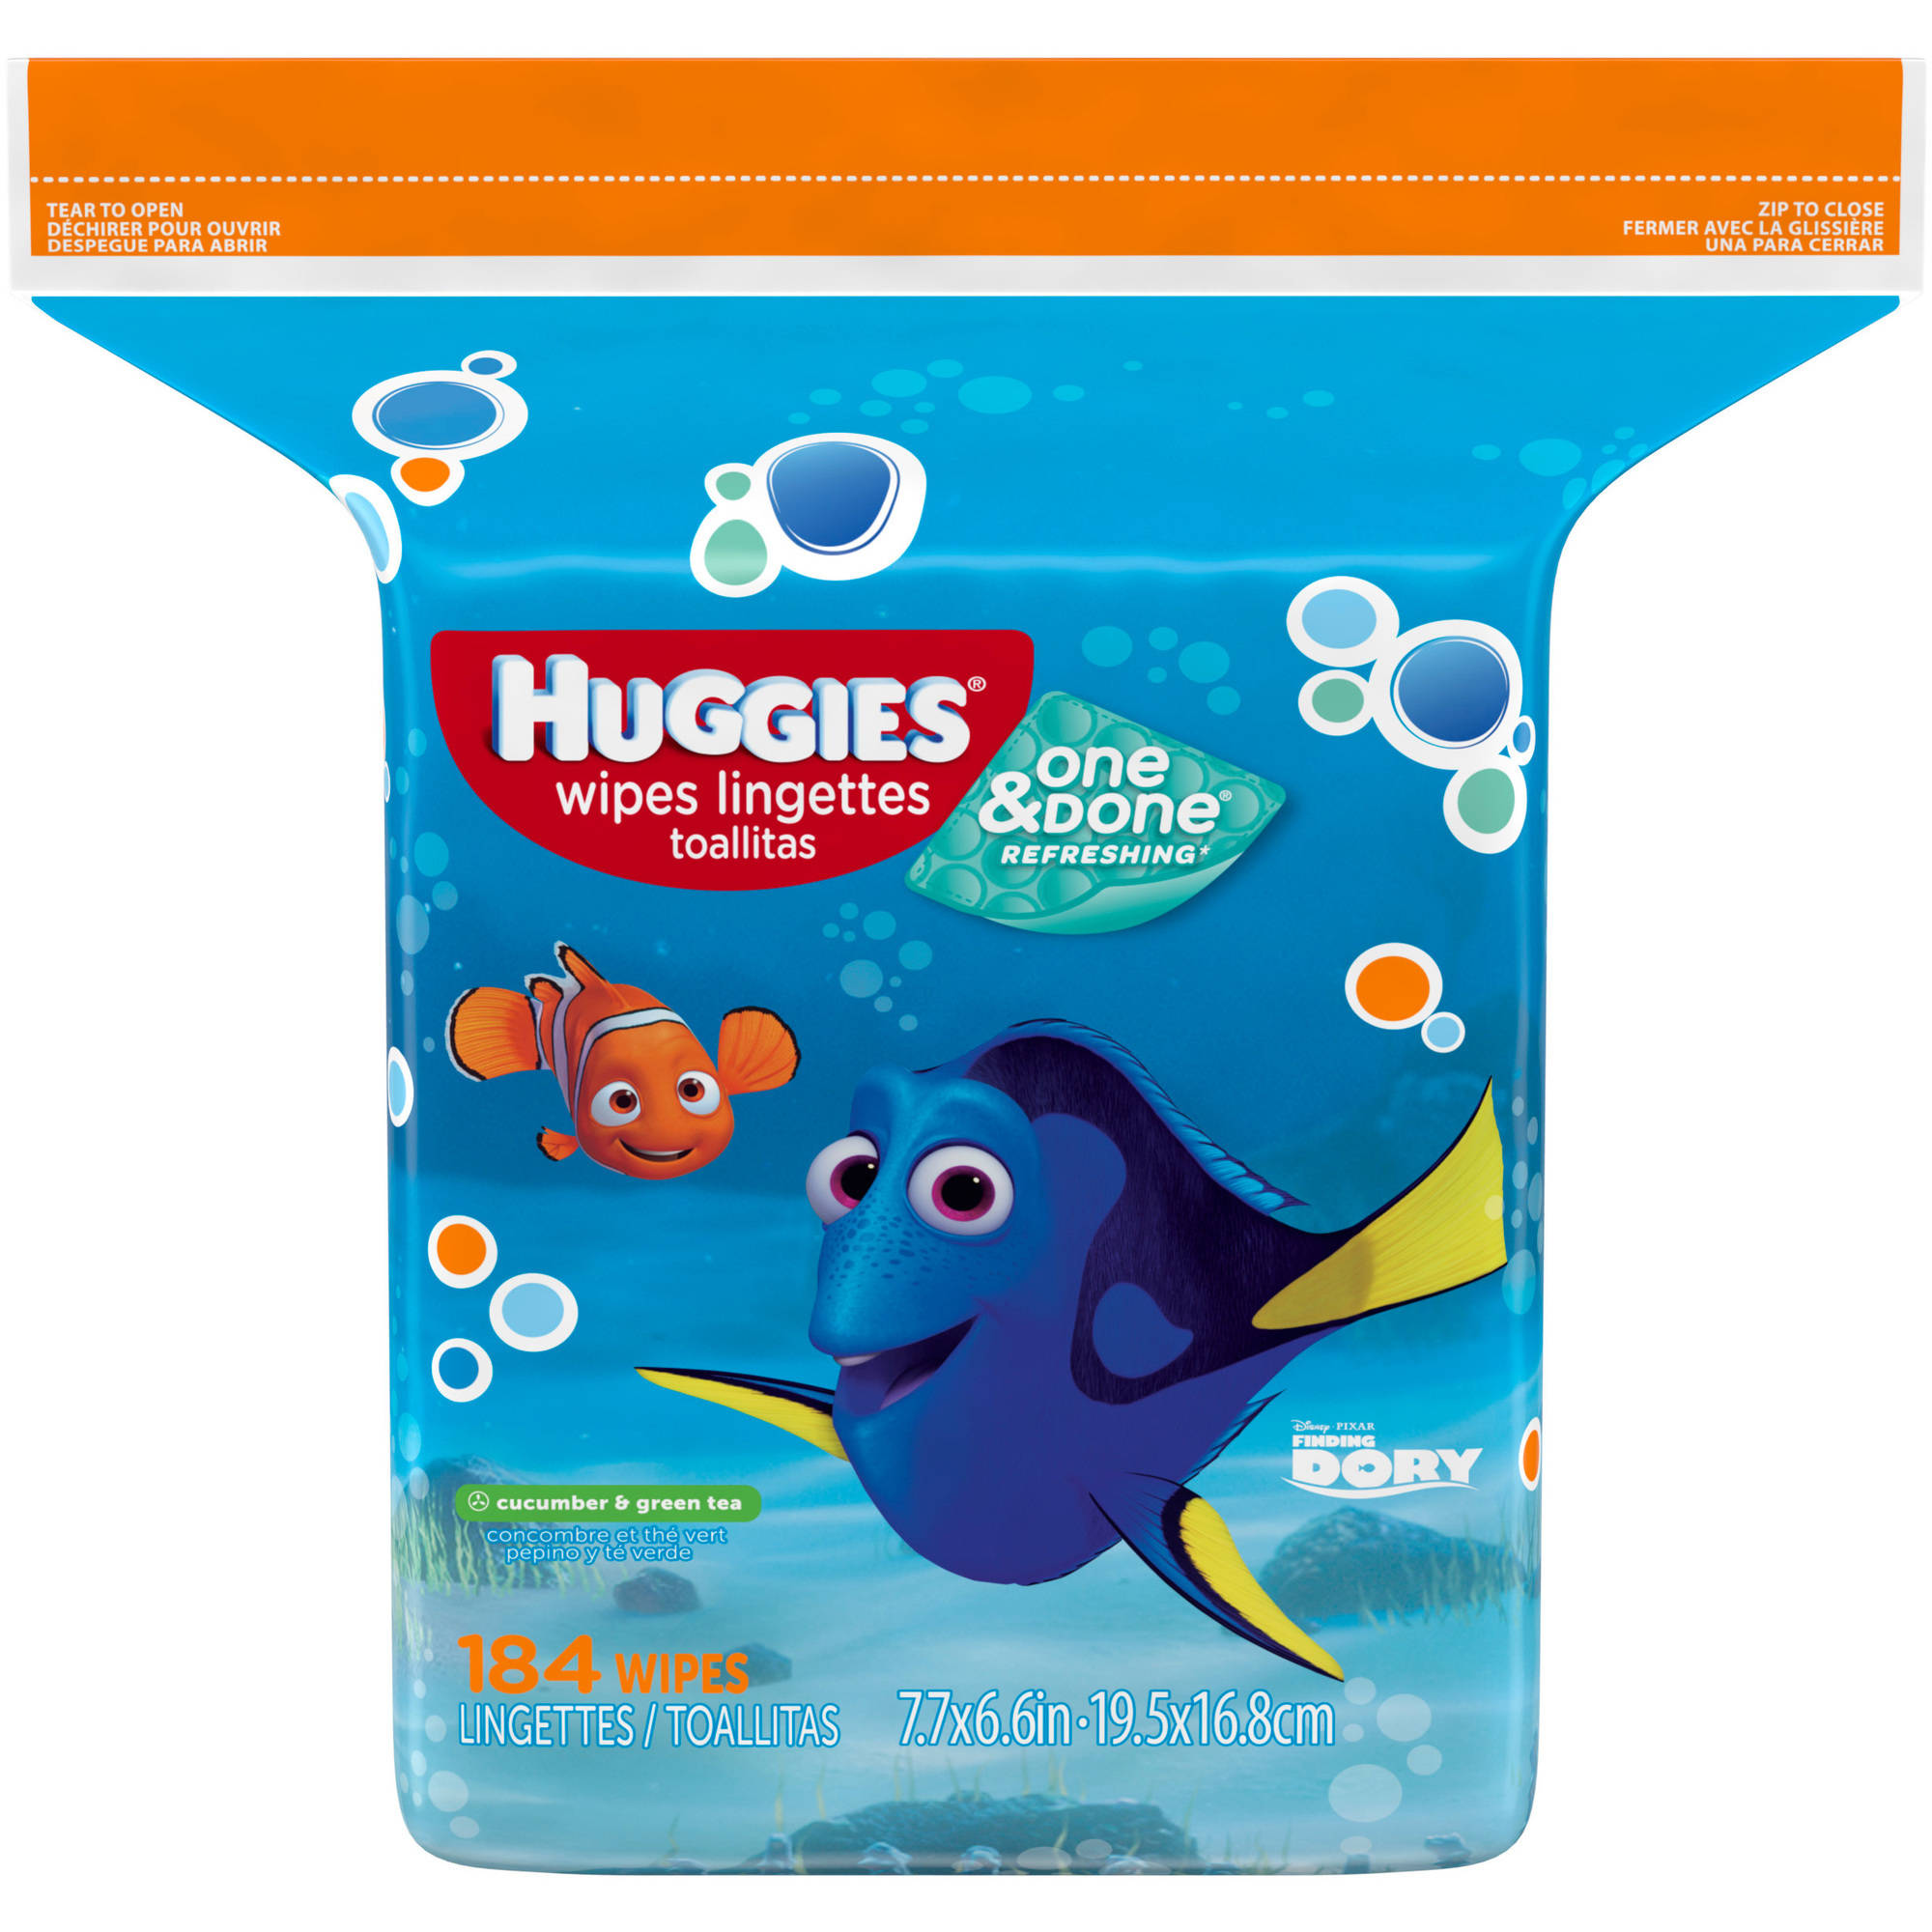 HUGGIES One & Done Naturally Refreshing Baby Wipes Refill, 184 sheets